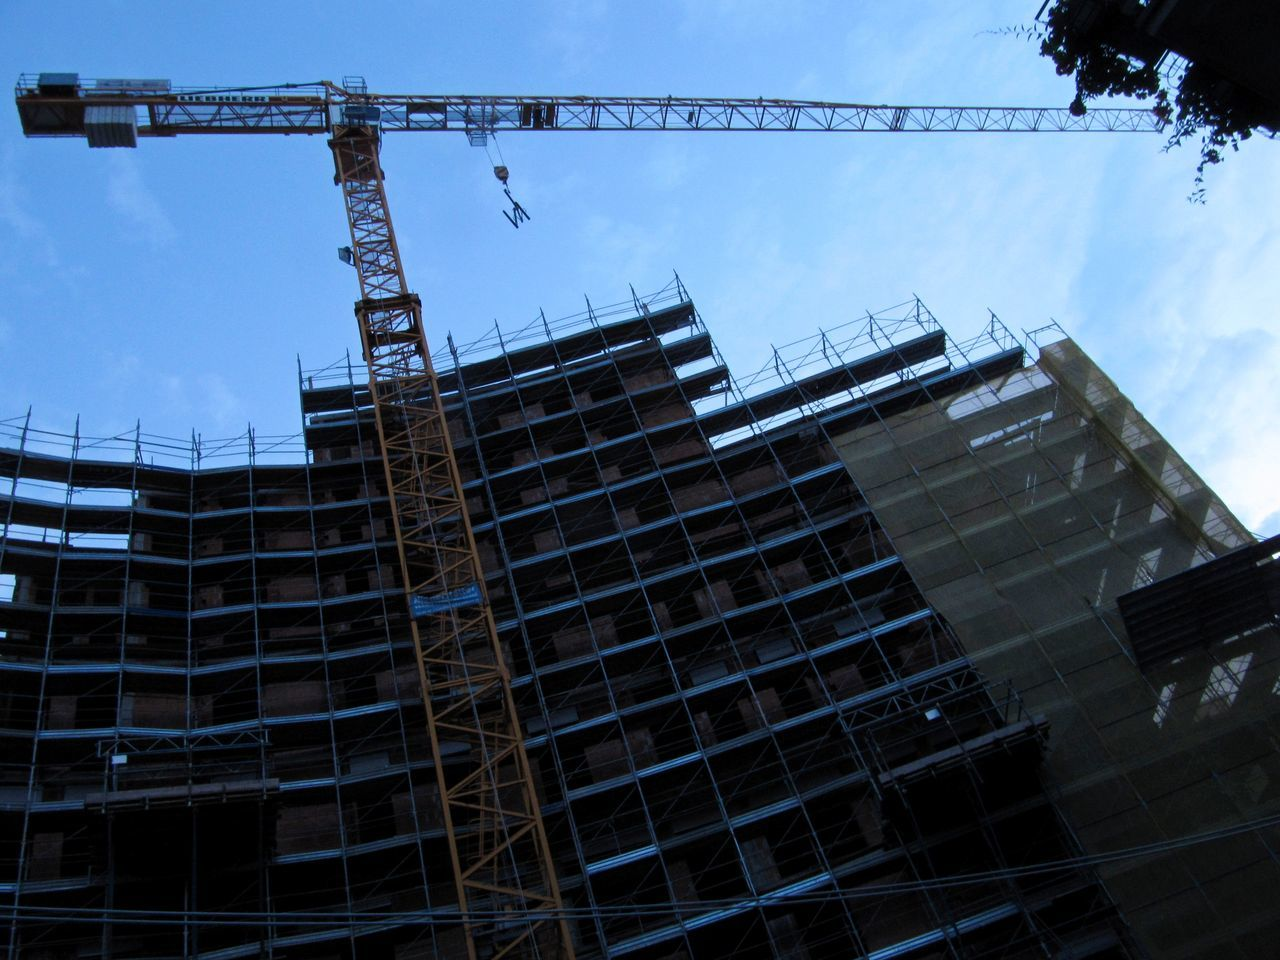 Low angle view of incomplete building and crane against blue sky